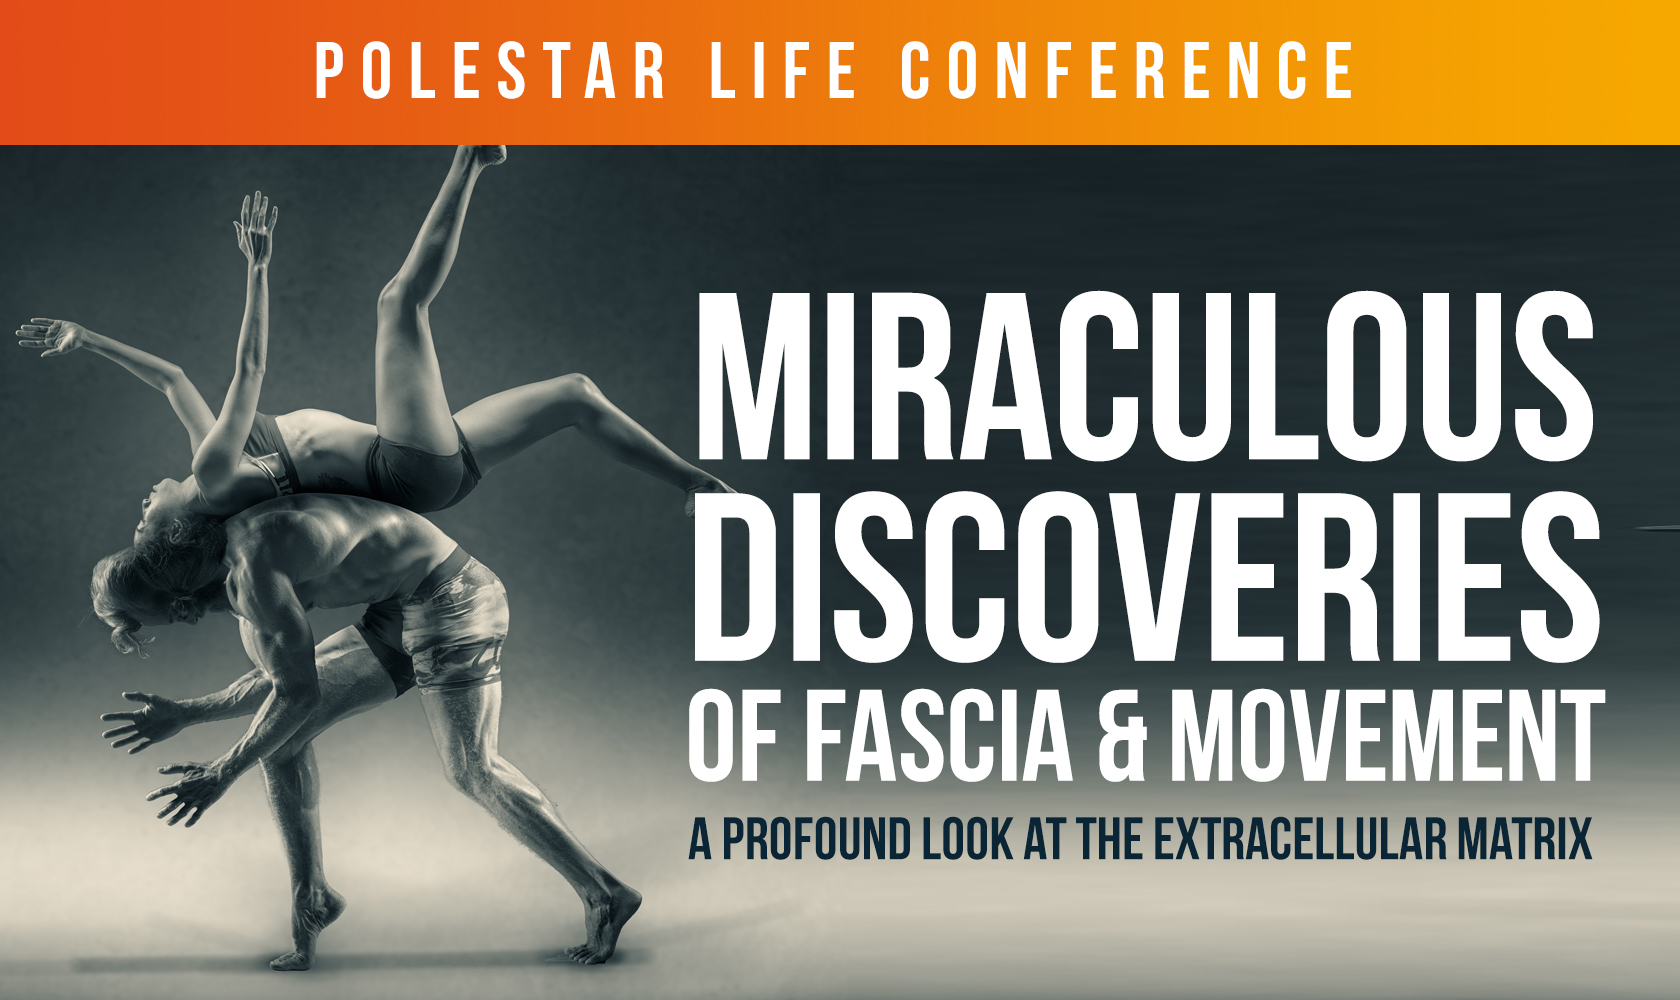 The Miraculous Discoveries of Fascia (Polestar Life Conference Series)